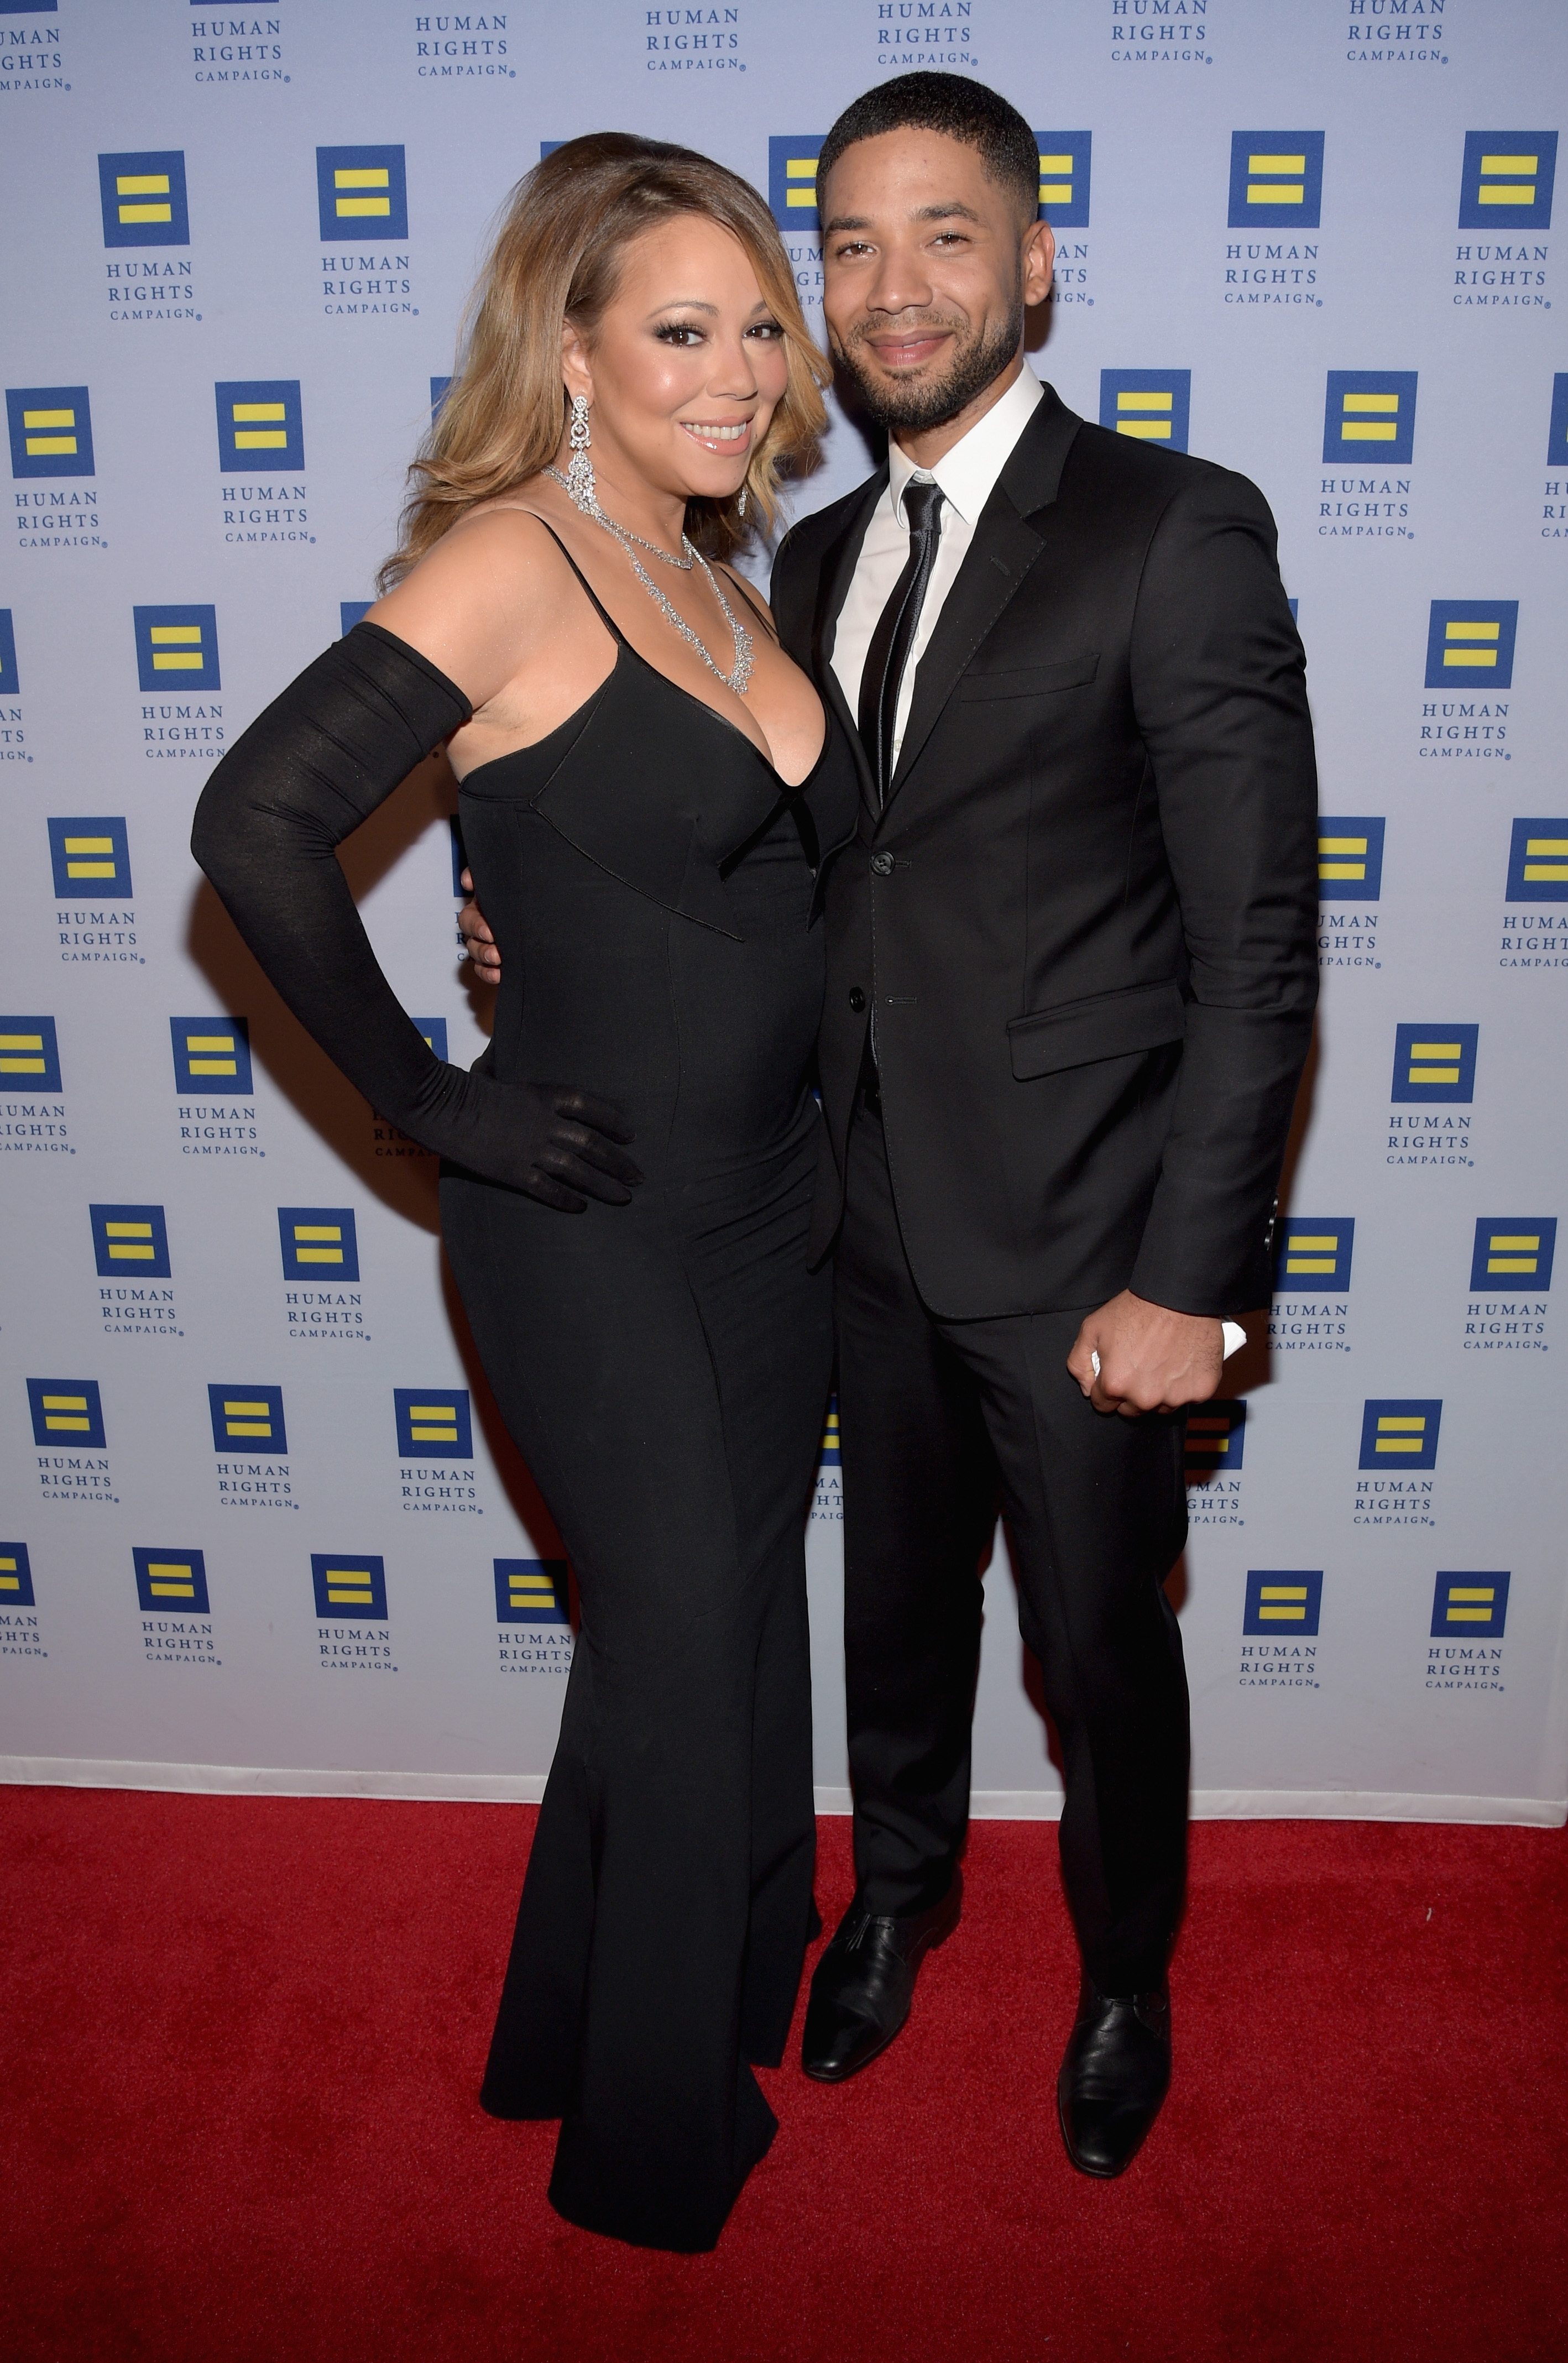 Human Rights Campaign Los Angeles Gala 2015